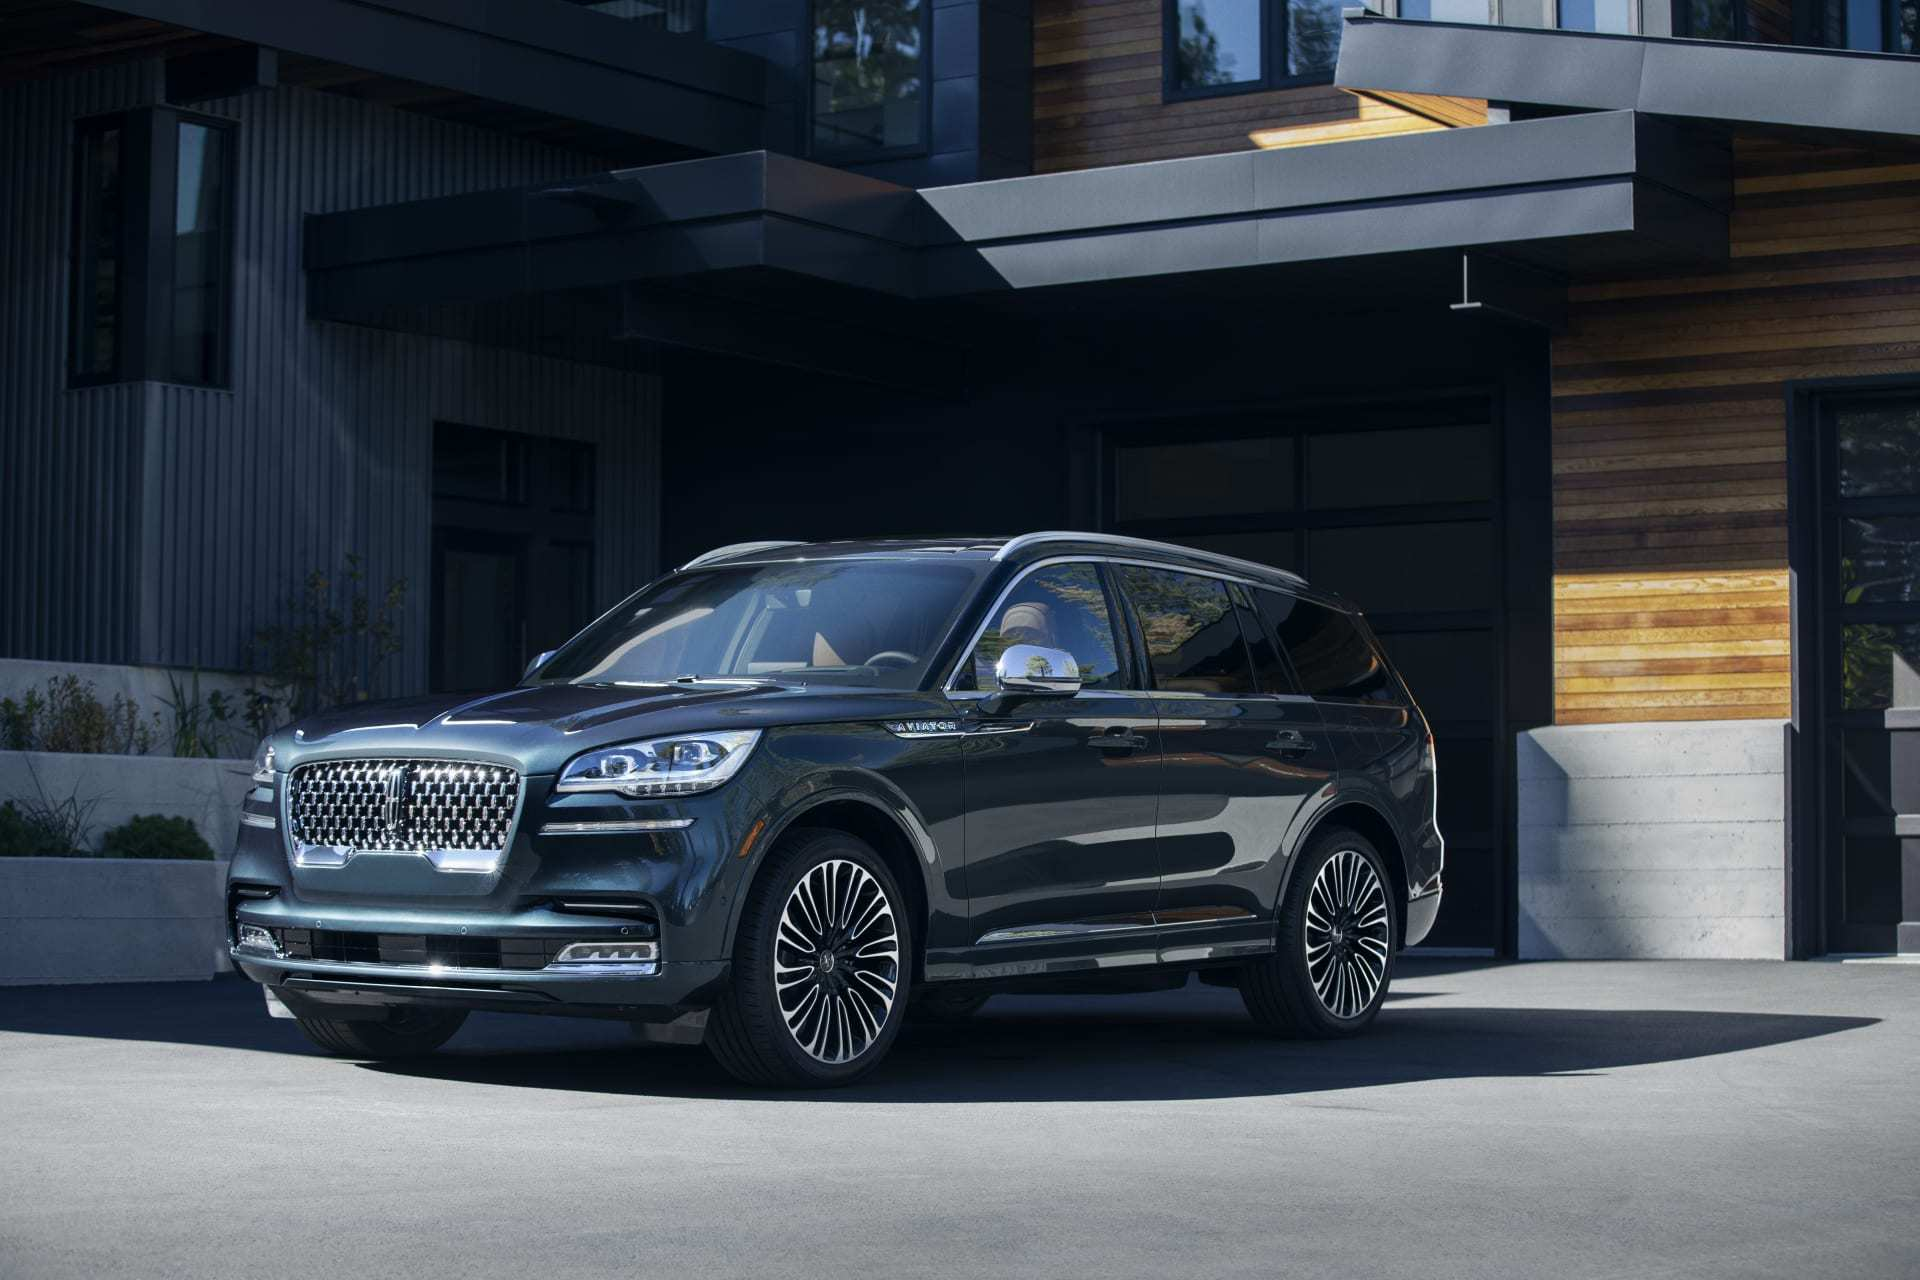 54 All New 2020 Lincoln Aviator Vs Volvo Xc90 New Concept